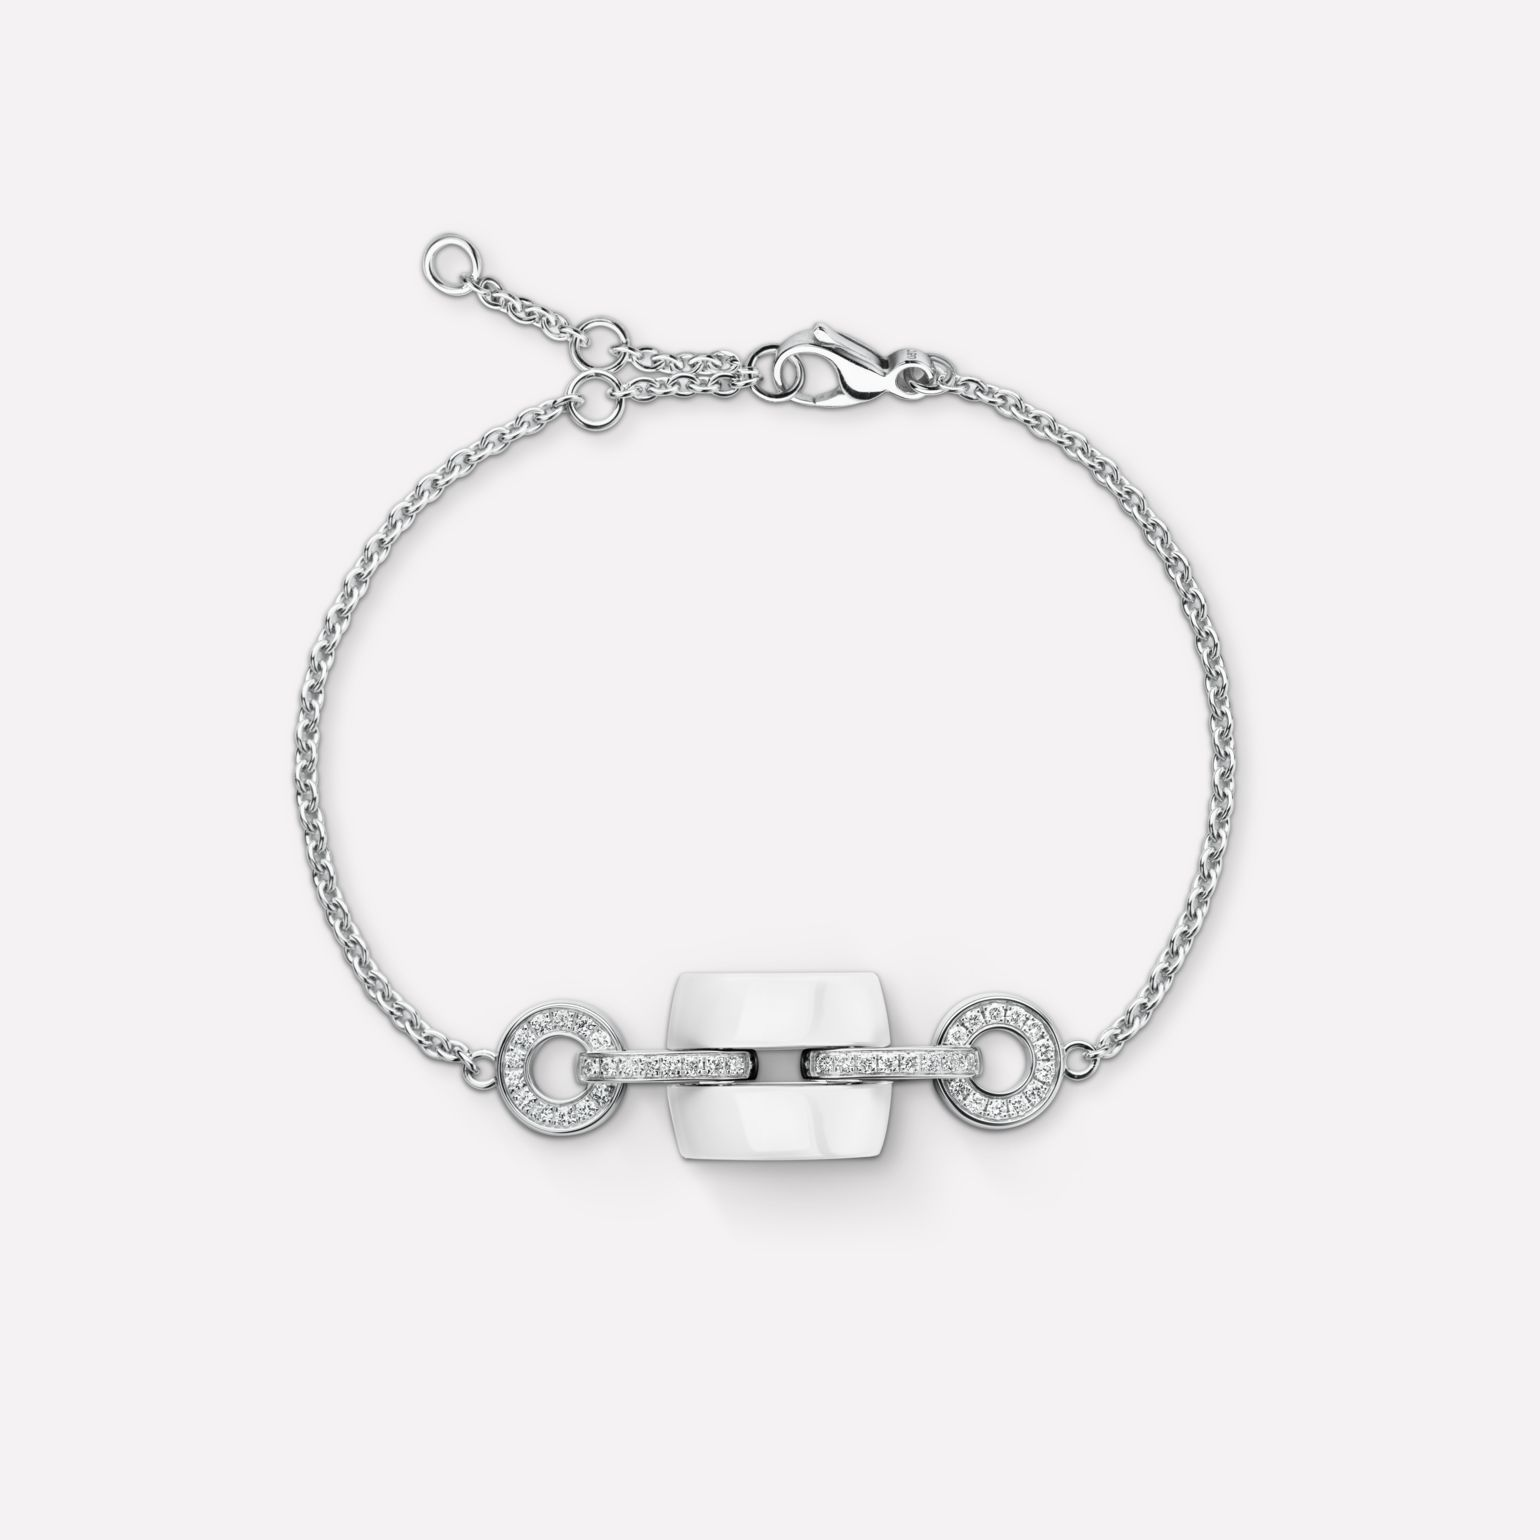 Ultra bracelet Ultra bracelet in white ceramic, 18K white gold, and diamonds